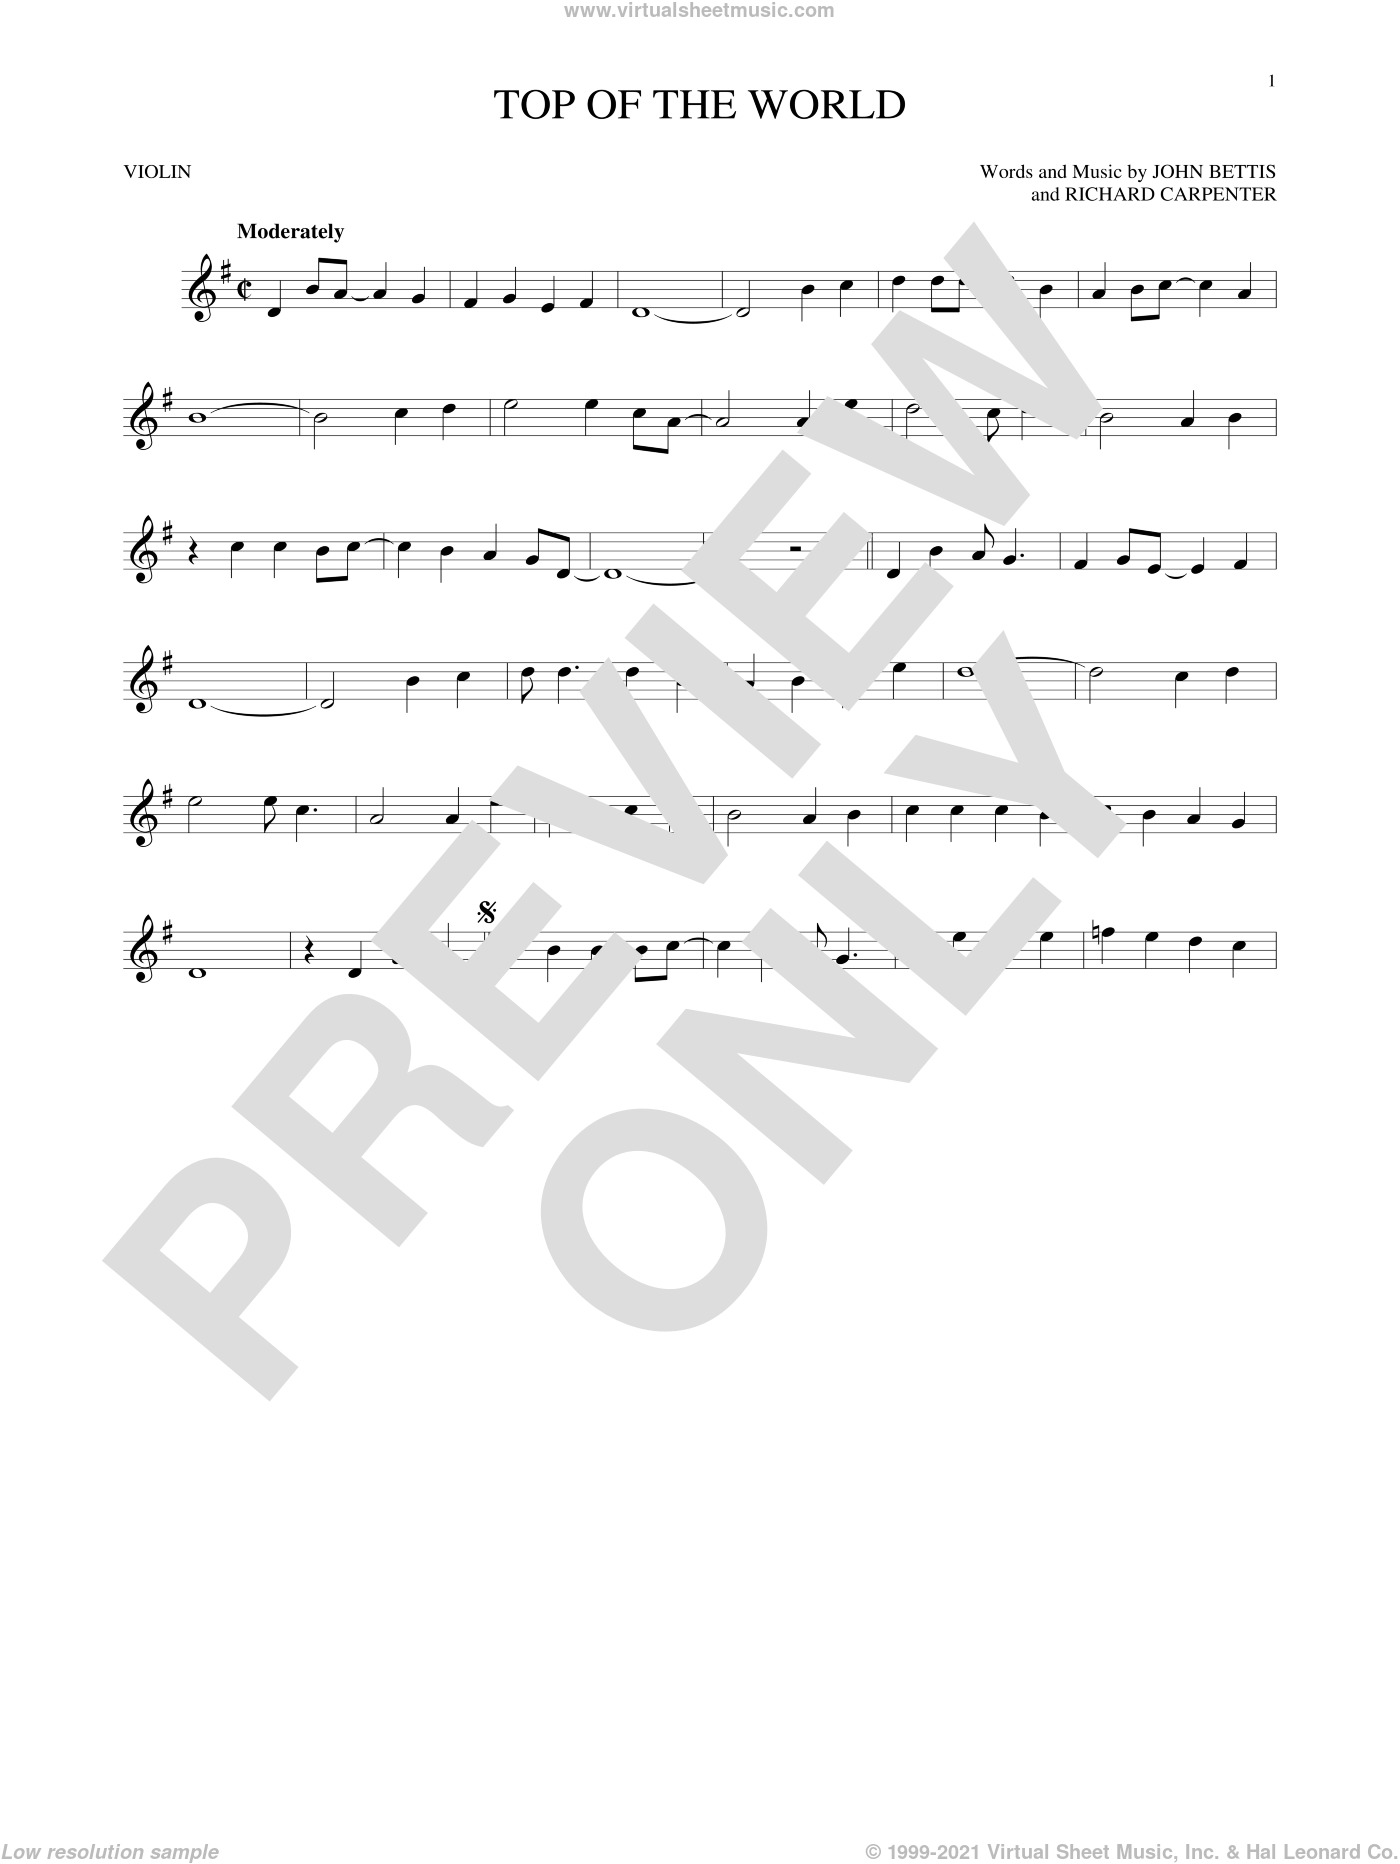 Top Of The World sheet music for violin solo by John Bettis, Carpenters and Richard Carpenter, intermediate skill level